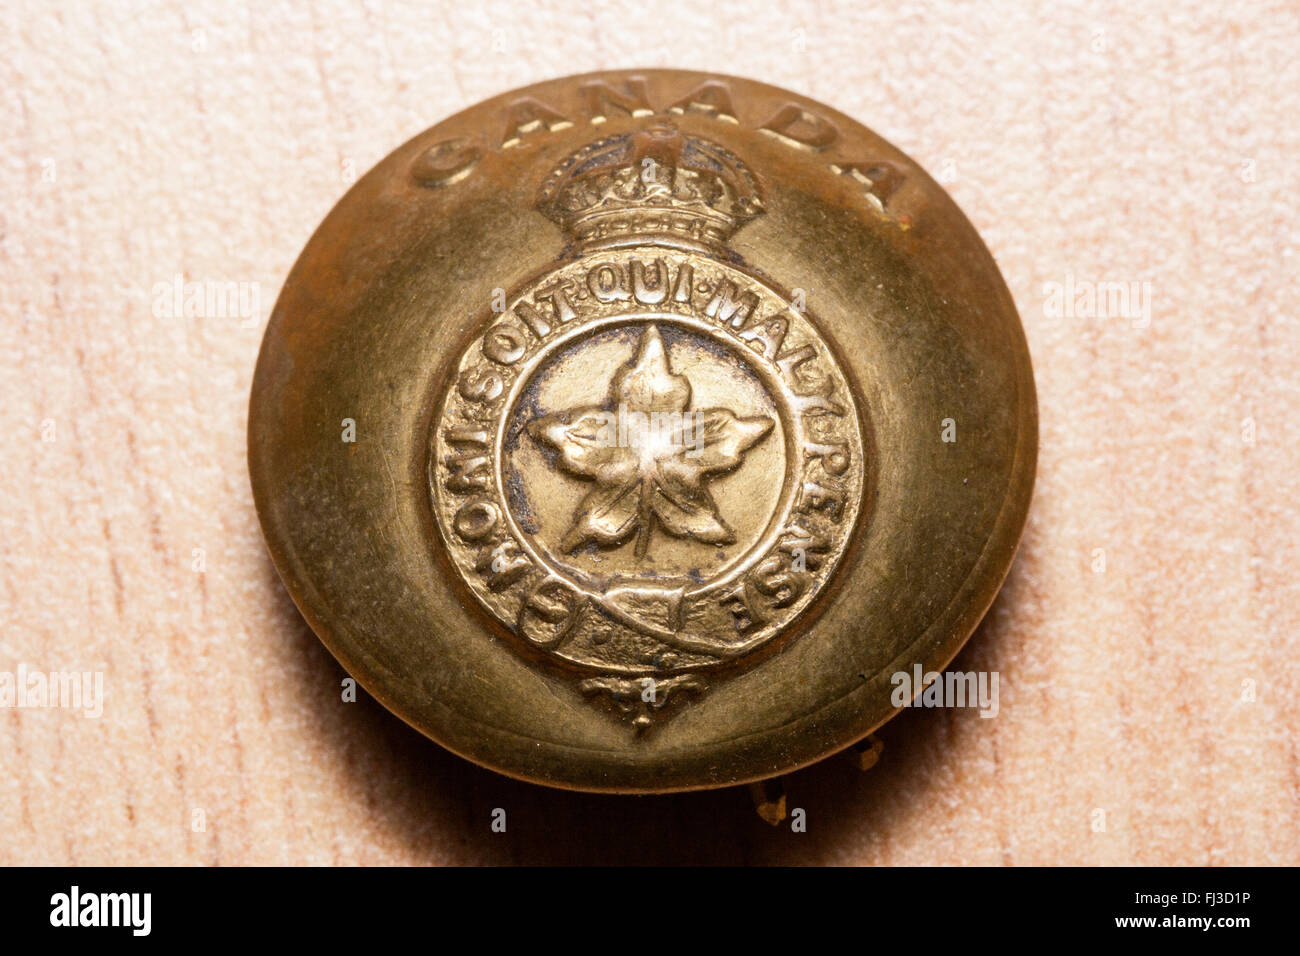 First world war, the great war. Regalia. British army tunic button on wood grain background. Maple leaf. Canada Stock Photo